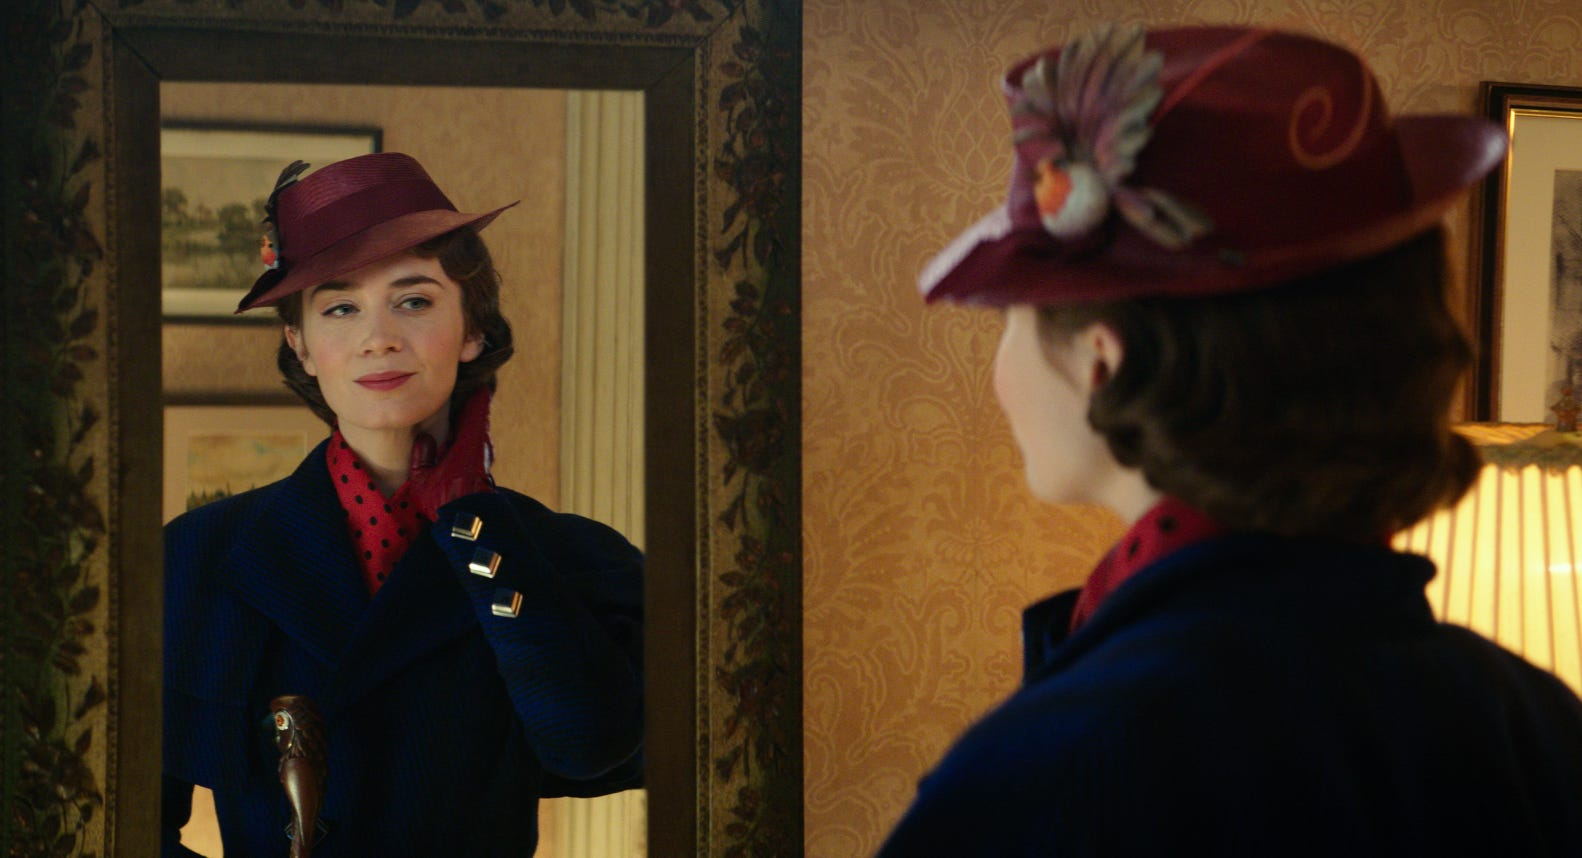 Emily Blunt's Mary Poppins is still practically perfect in every way.